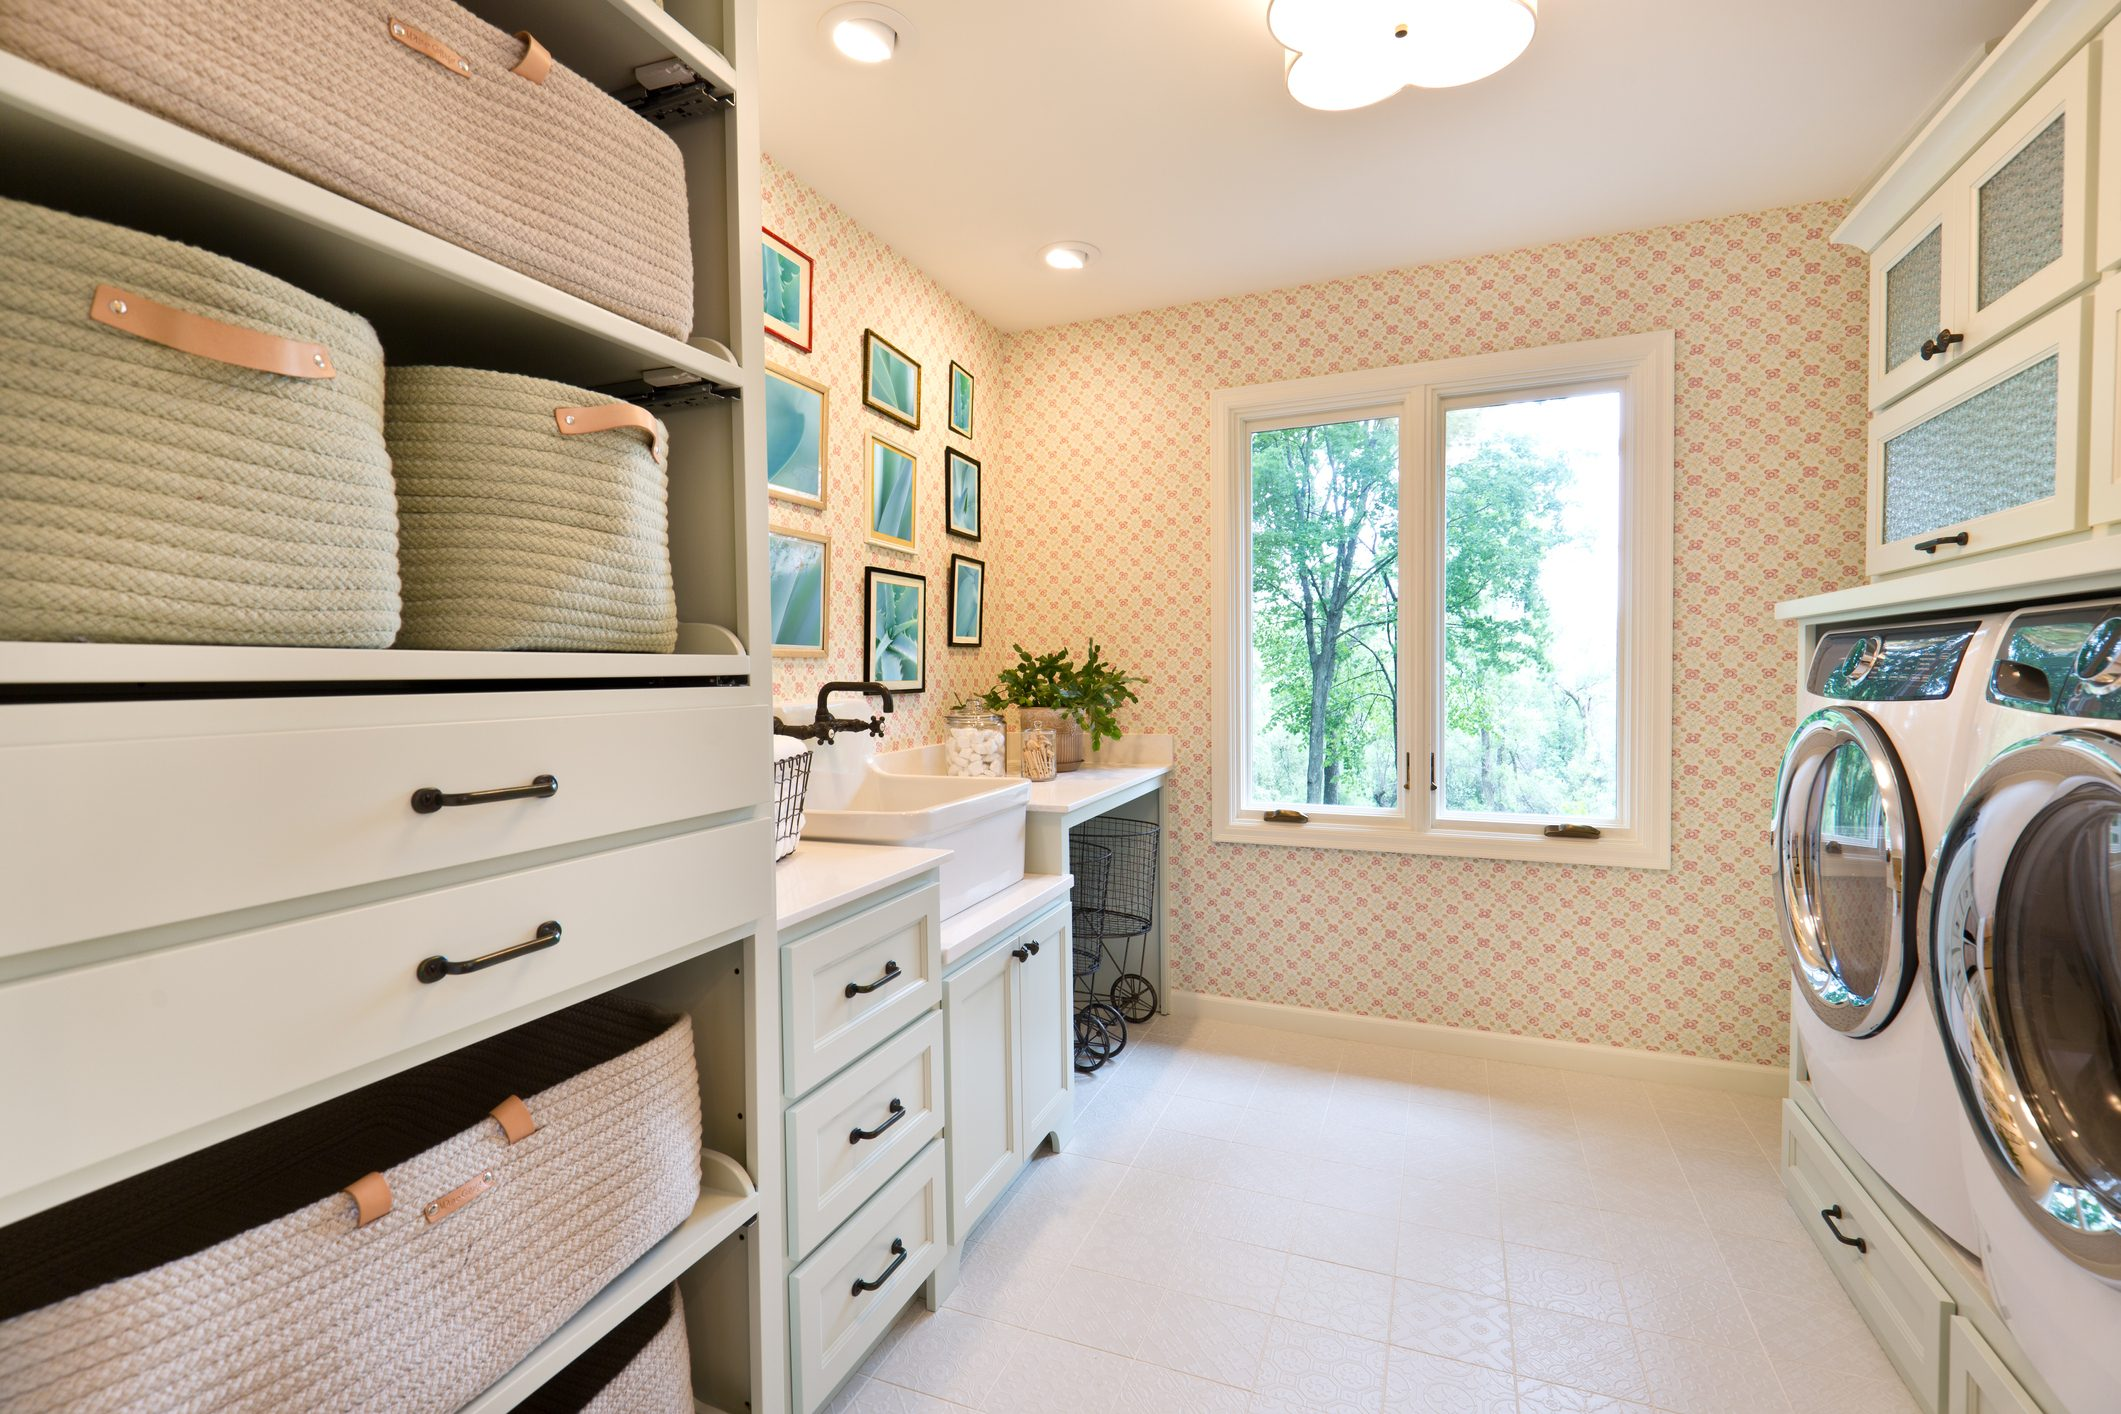 How-to Guide For Packing Your Laundry Room